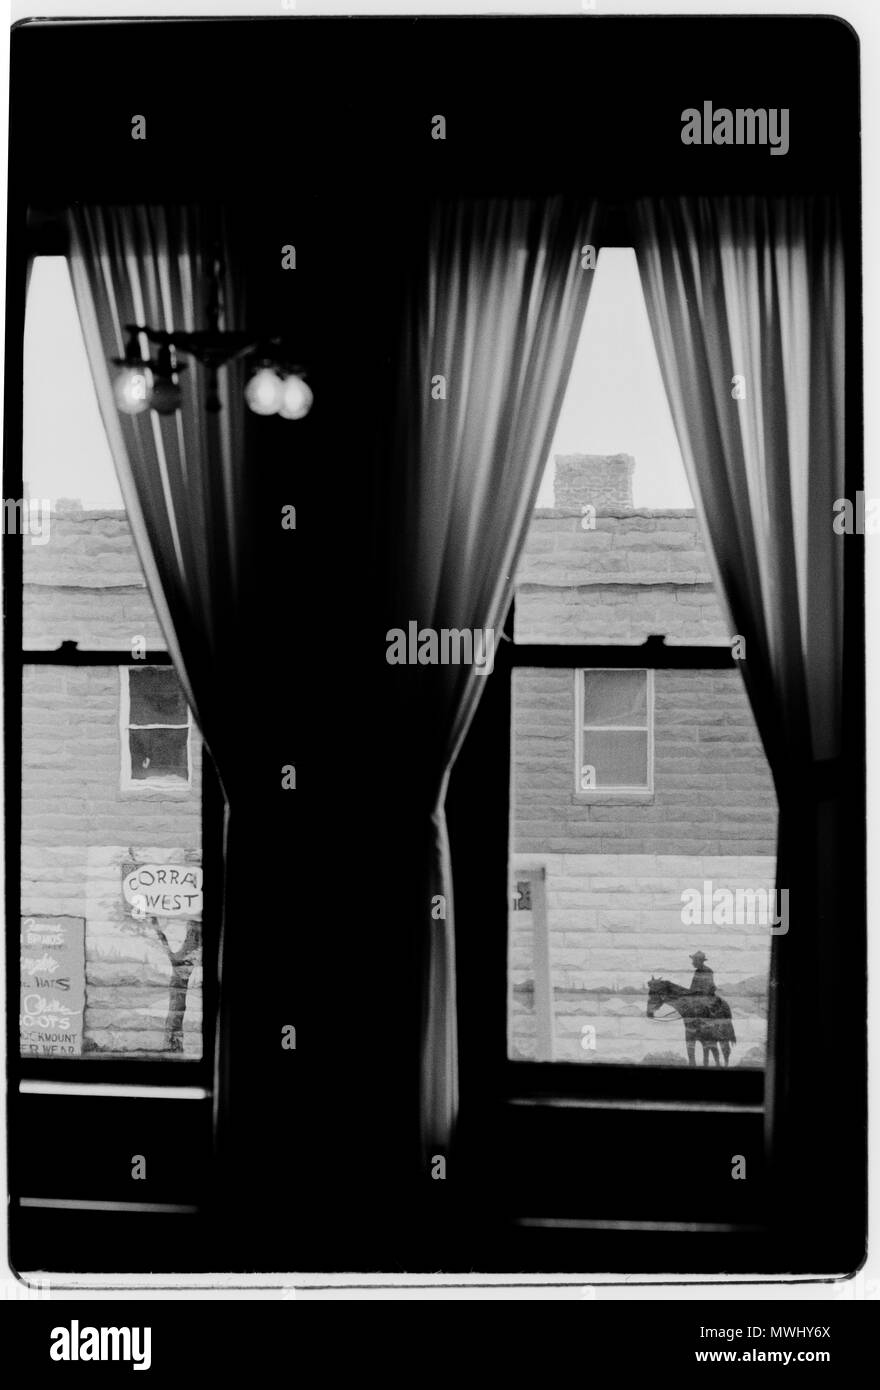 Wyoming USA View through a window to  man on a horse in Sheridan,Wyoming - Stock Image